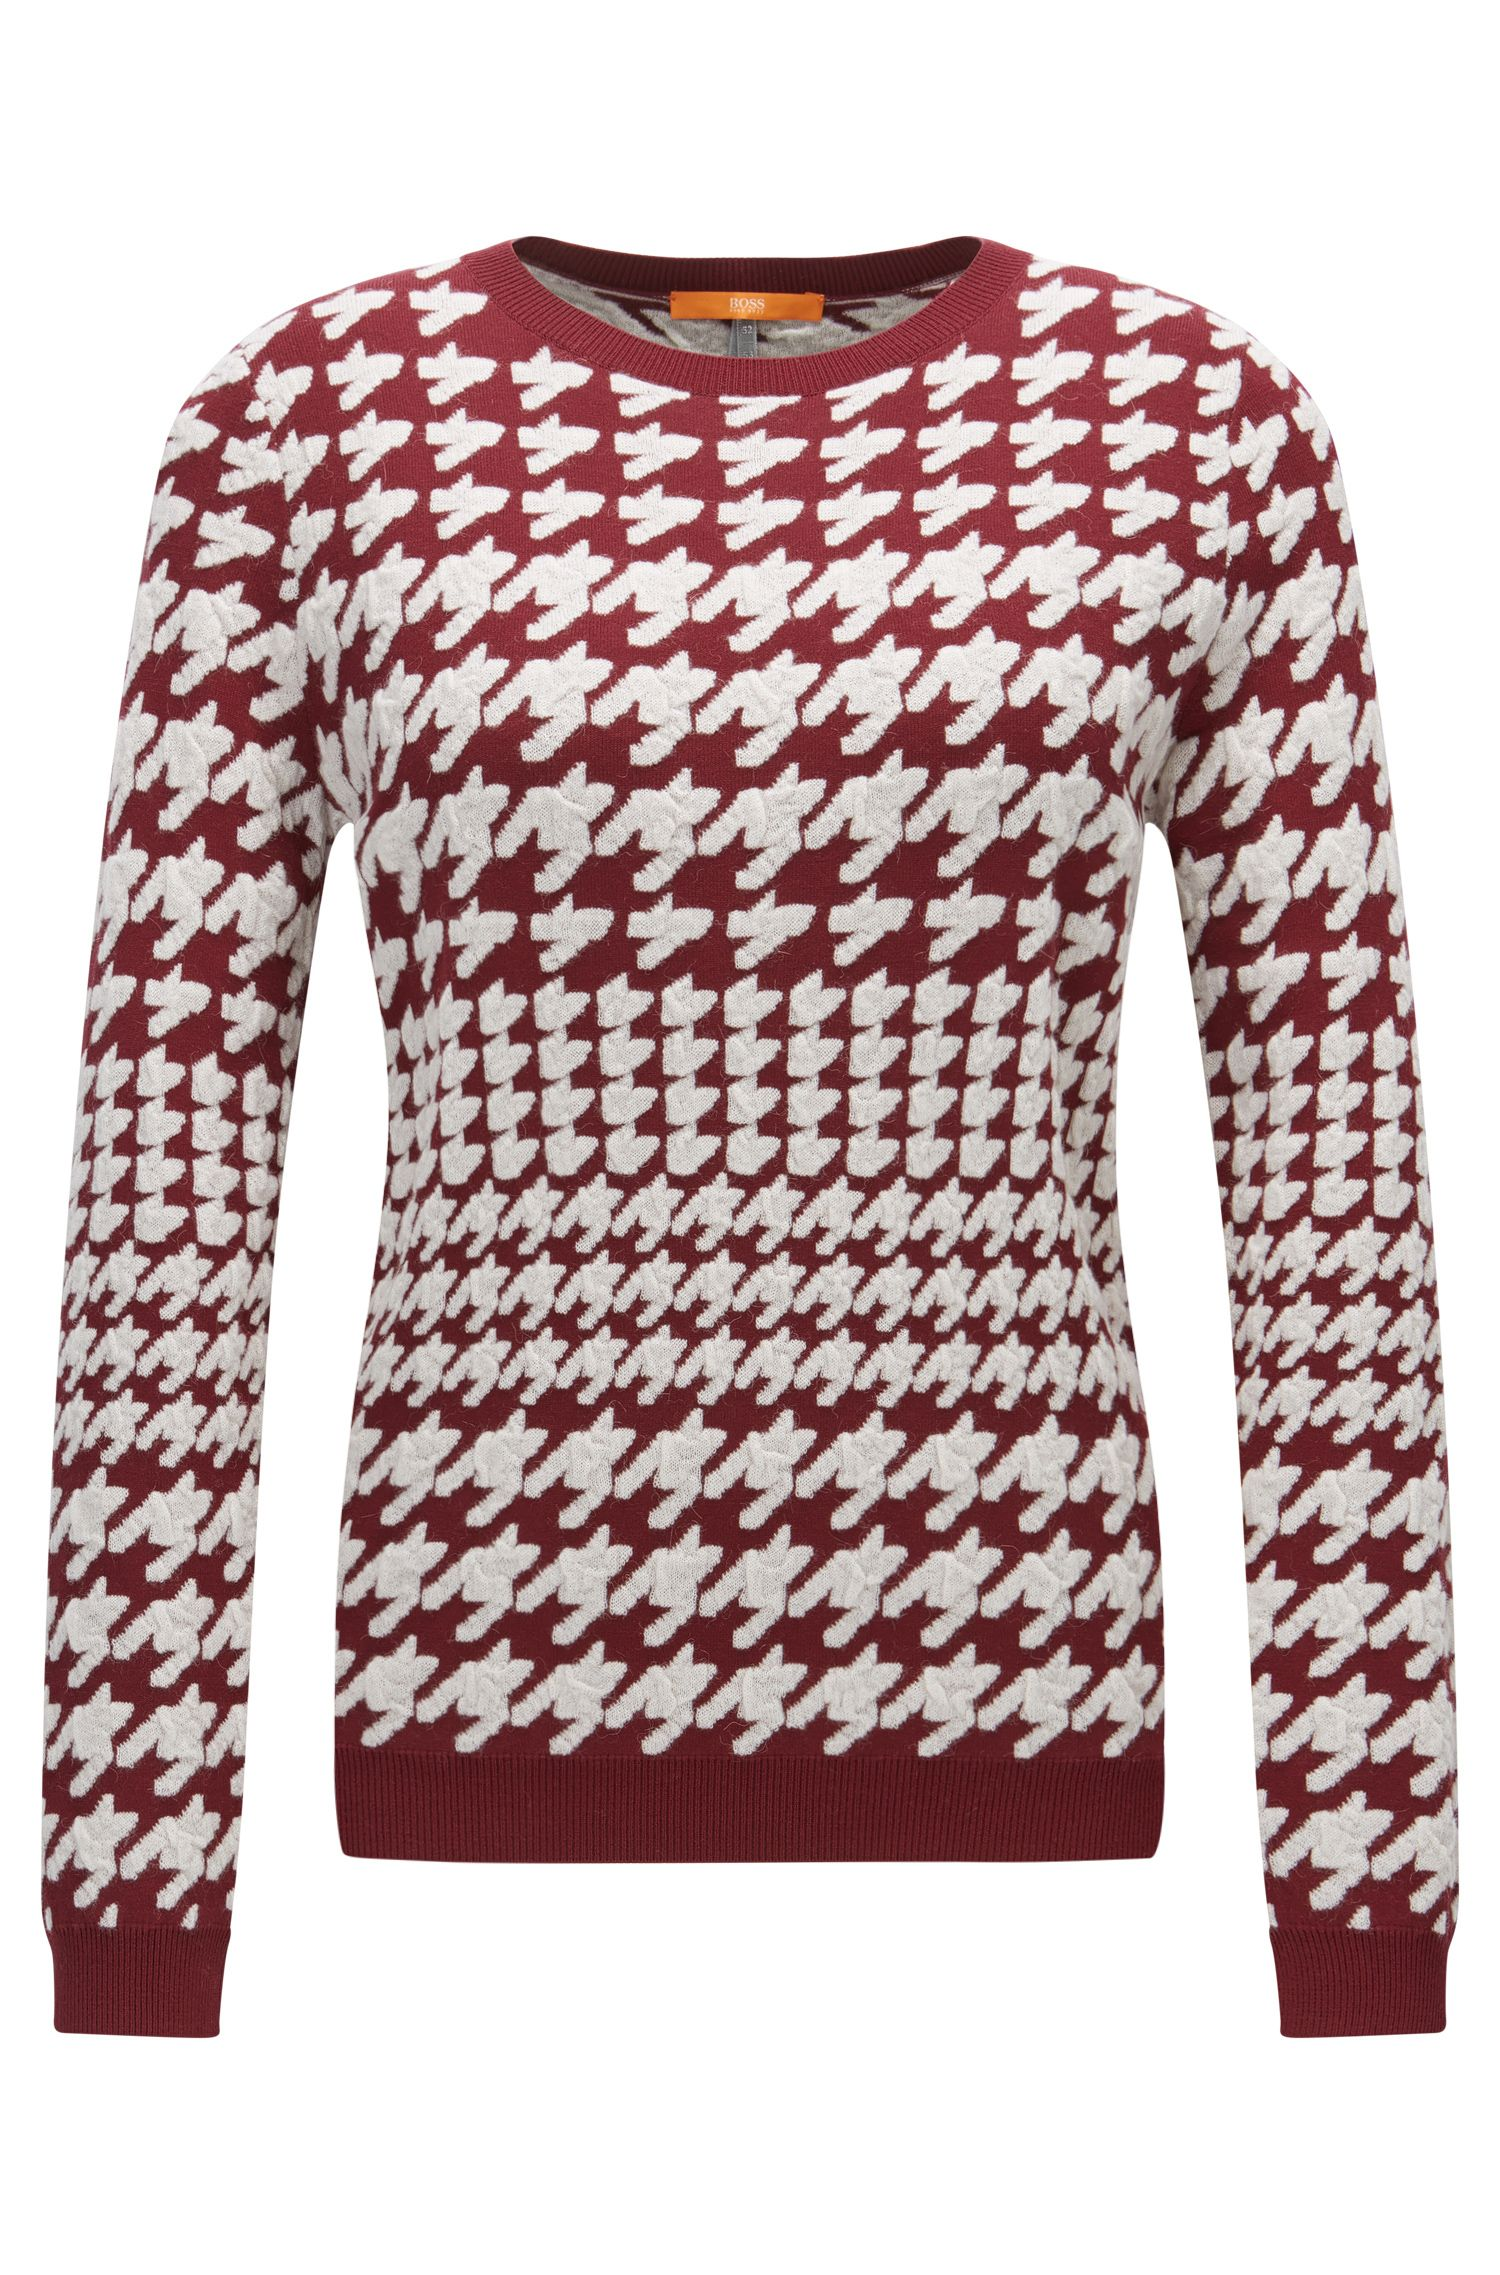 Crew-neck sweater with houndstooth raised jacquard